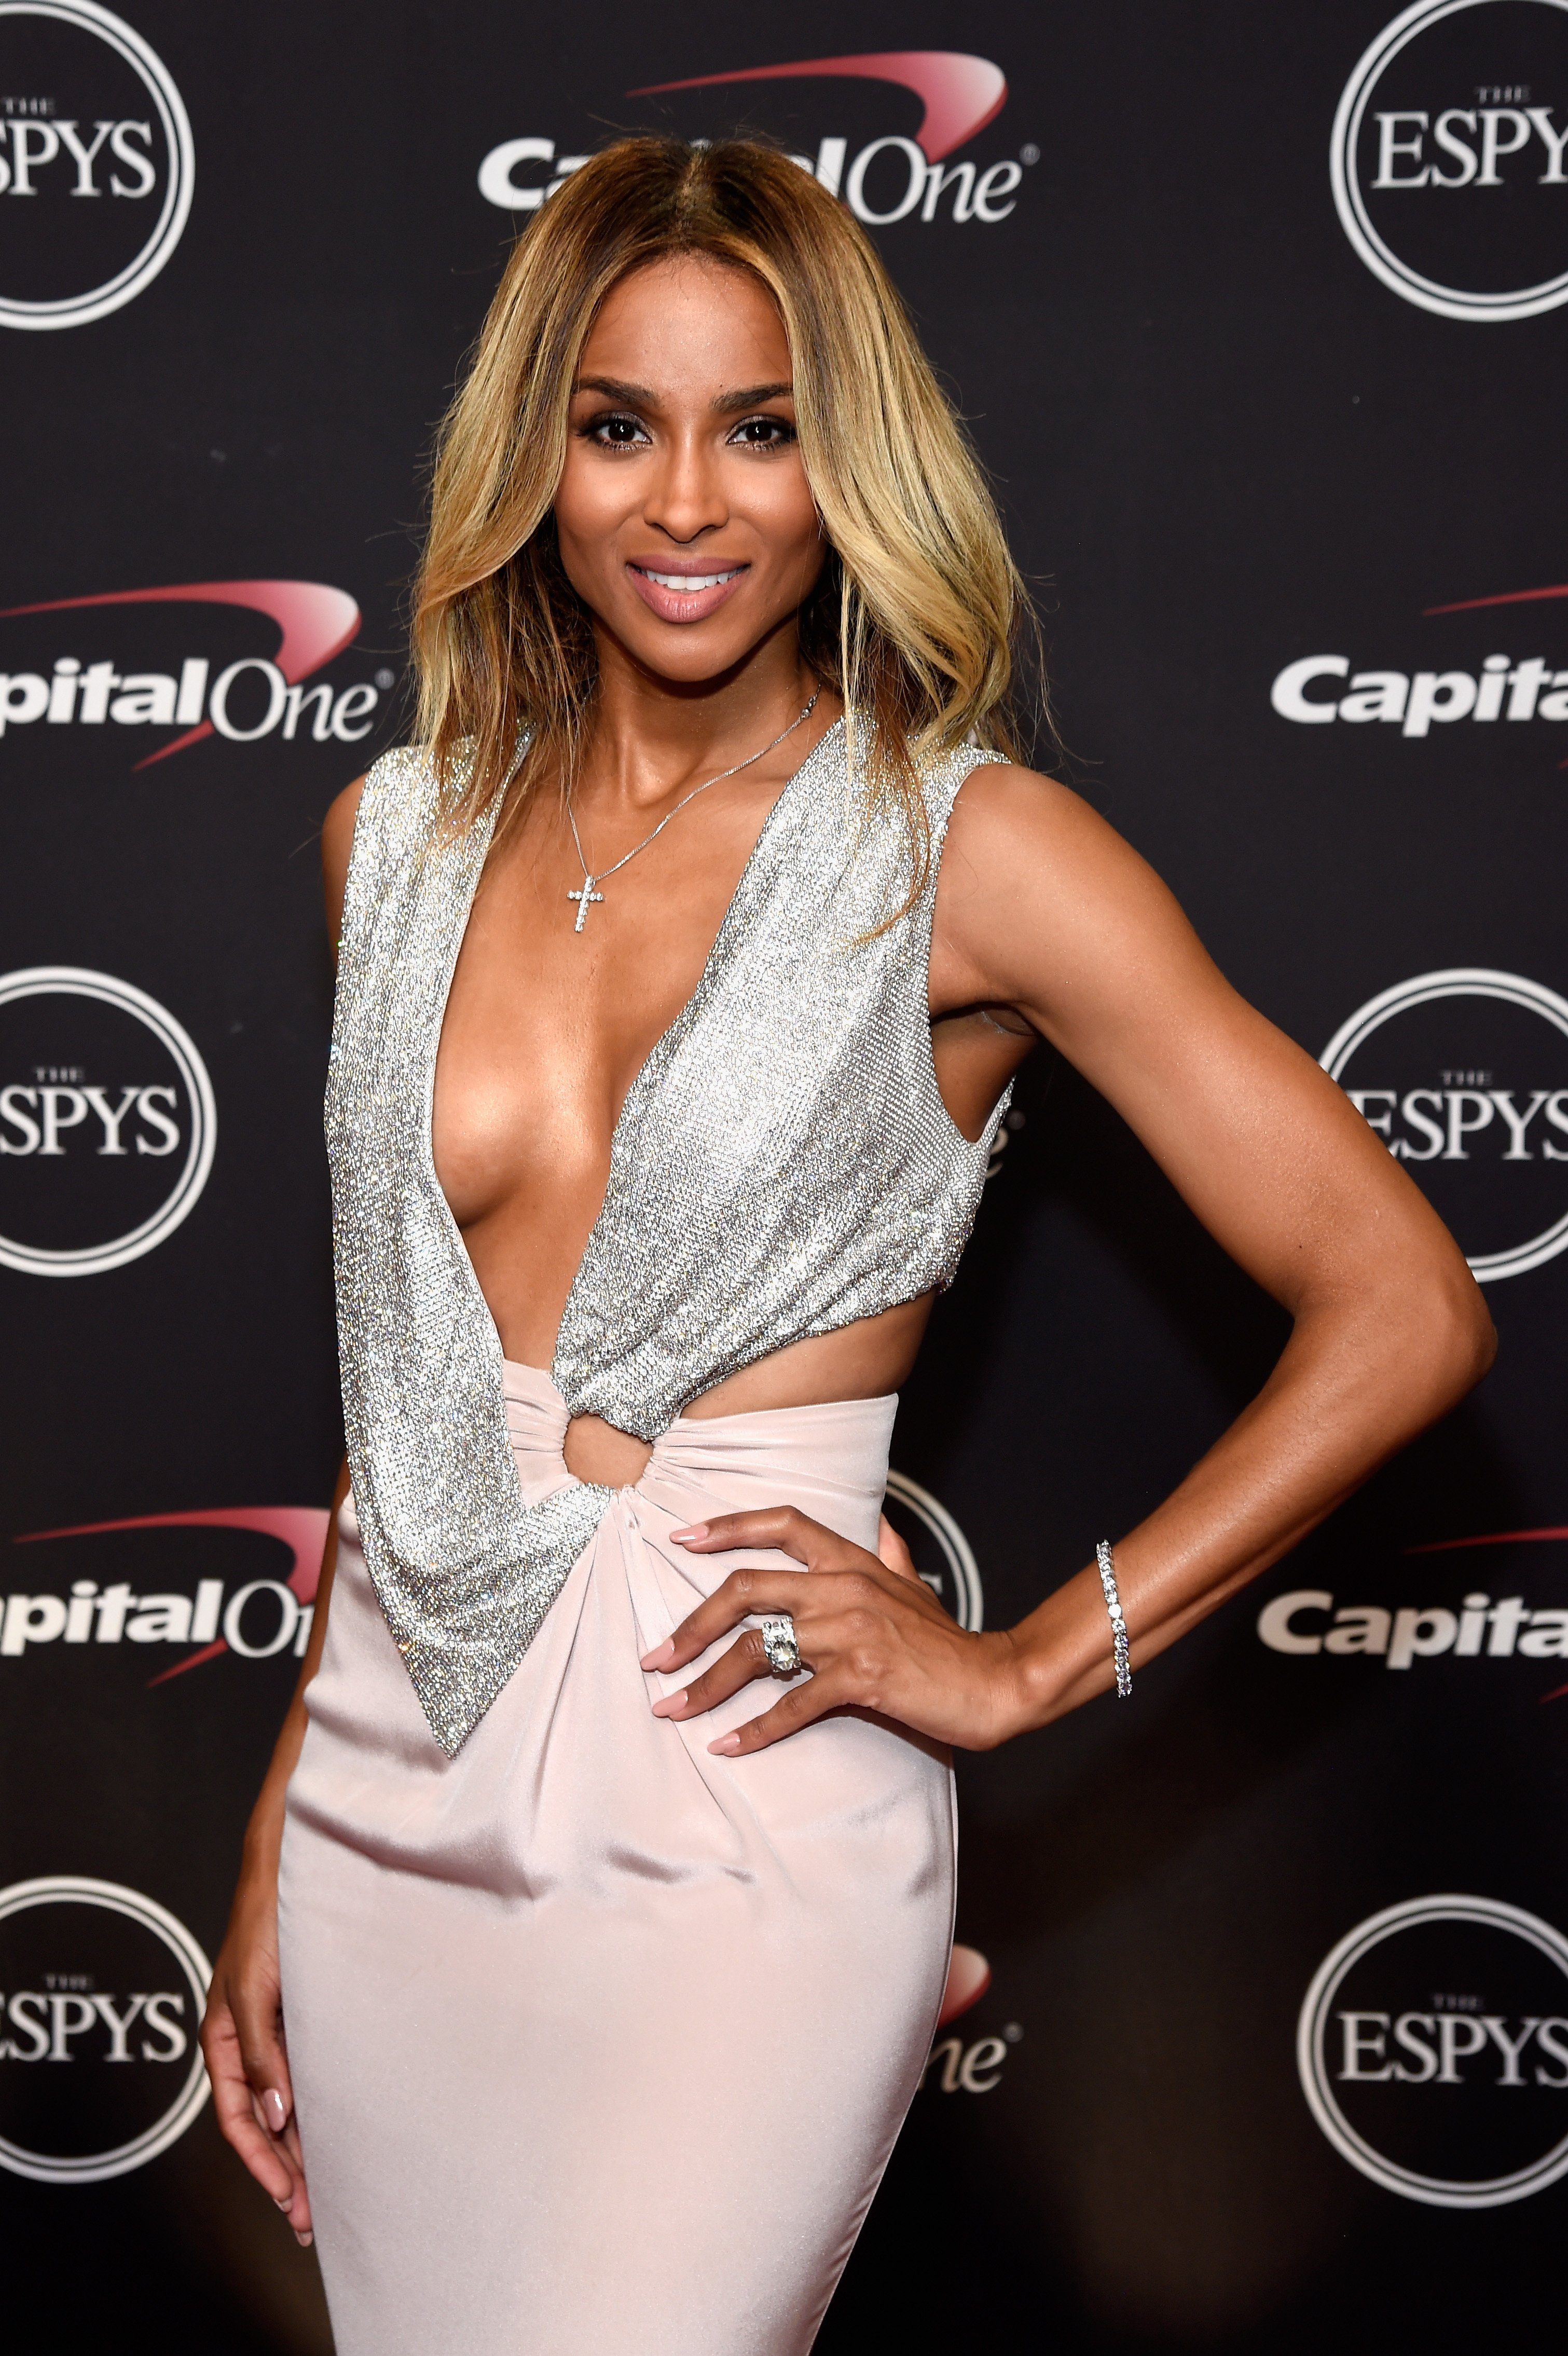 Ciara at the 2016 ESPYS at Microsoft Theater in Los Angeles, California | Source: Getty Images